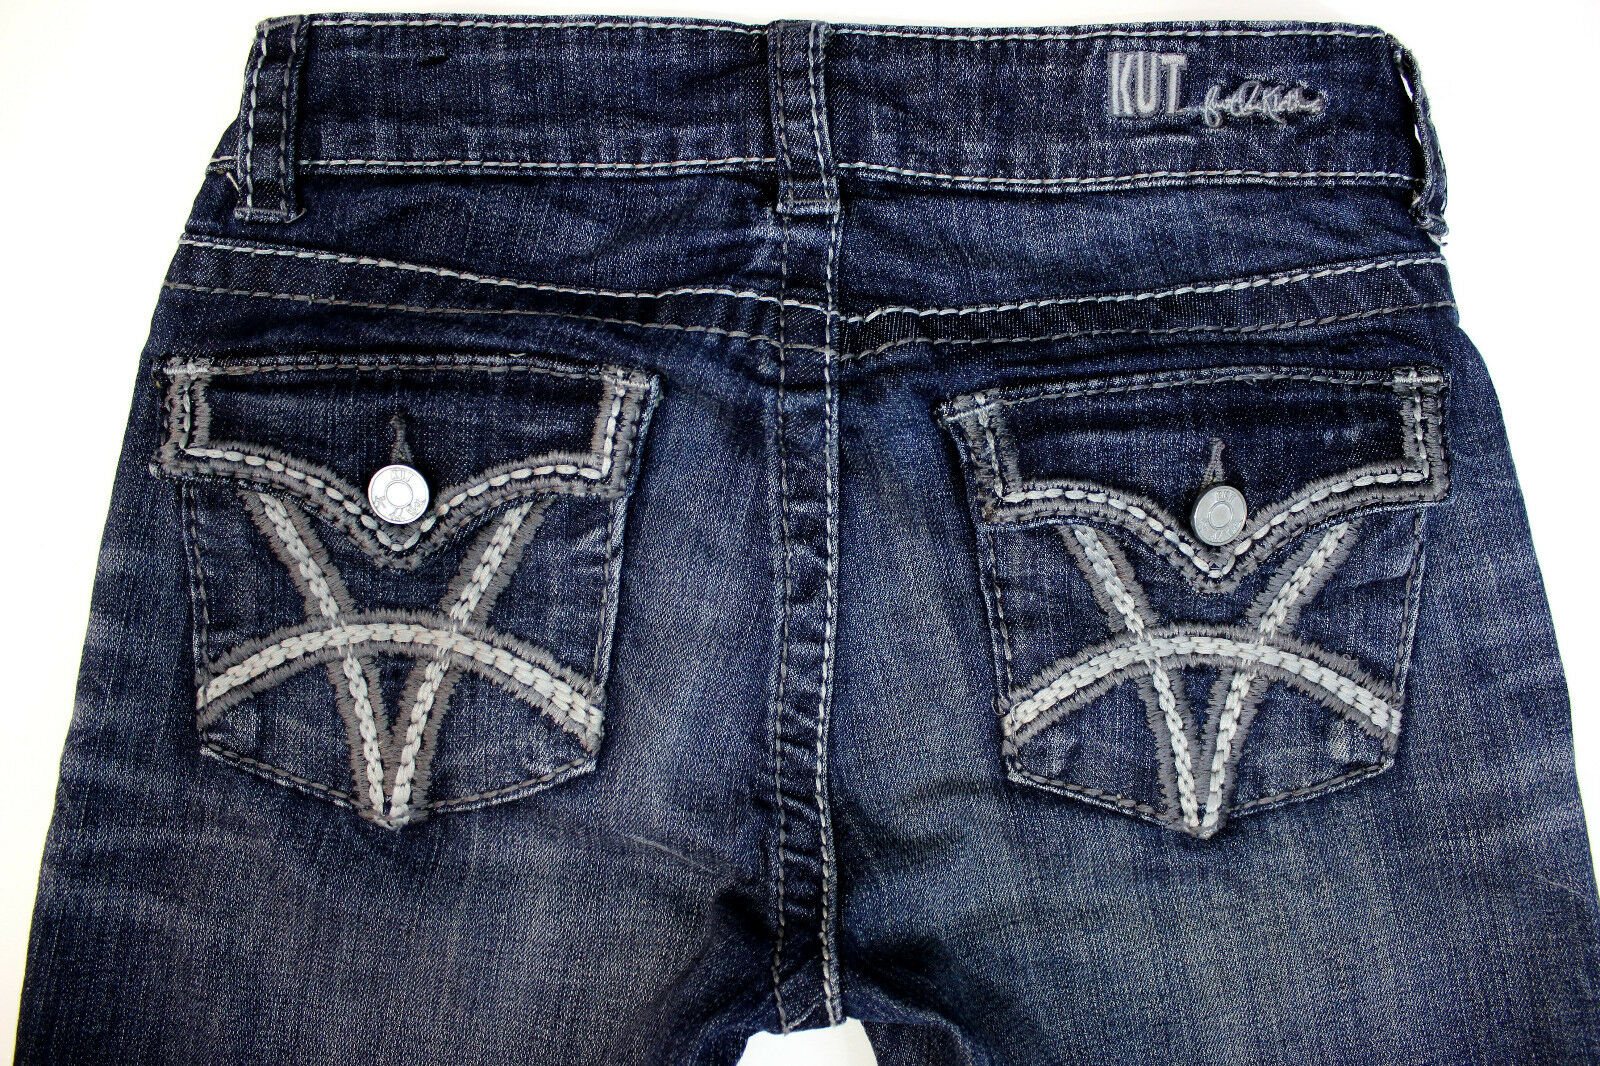 Kut from the Kloth Jeans Wiskered Distressed Low Rise Bootcut SZ 28x33